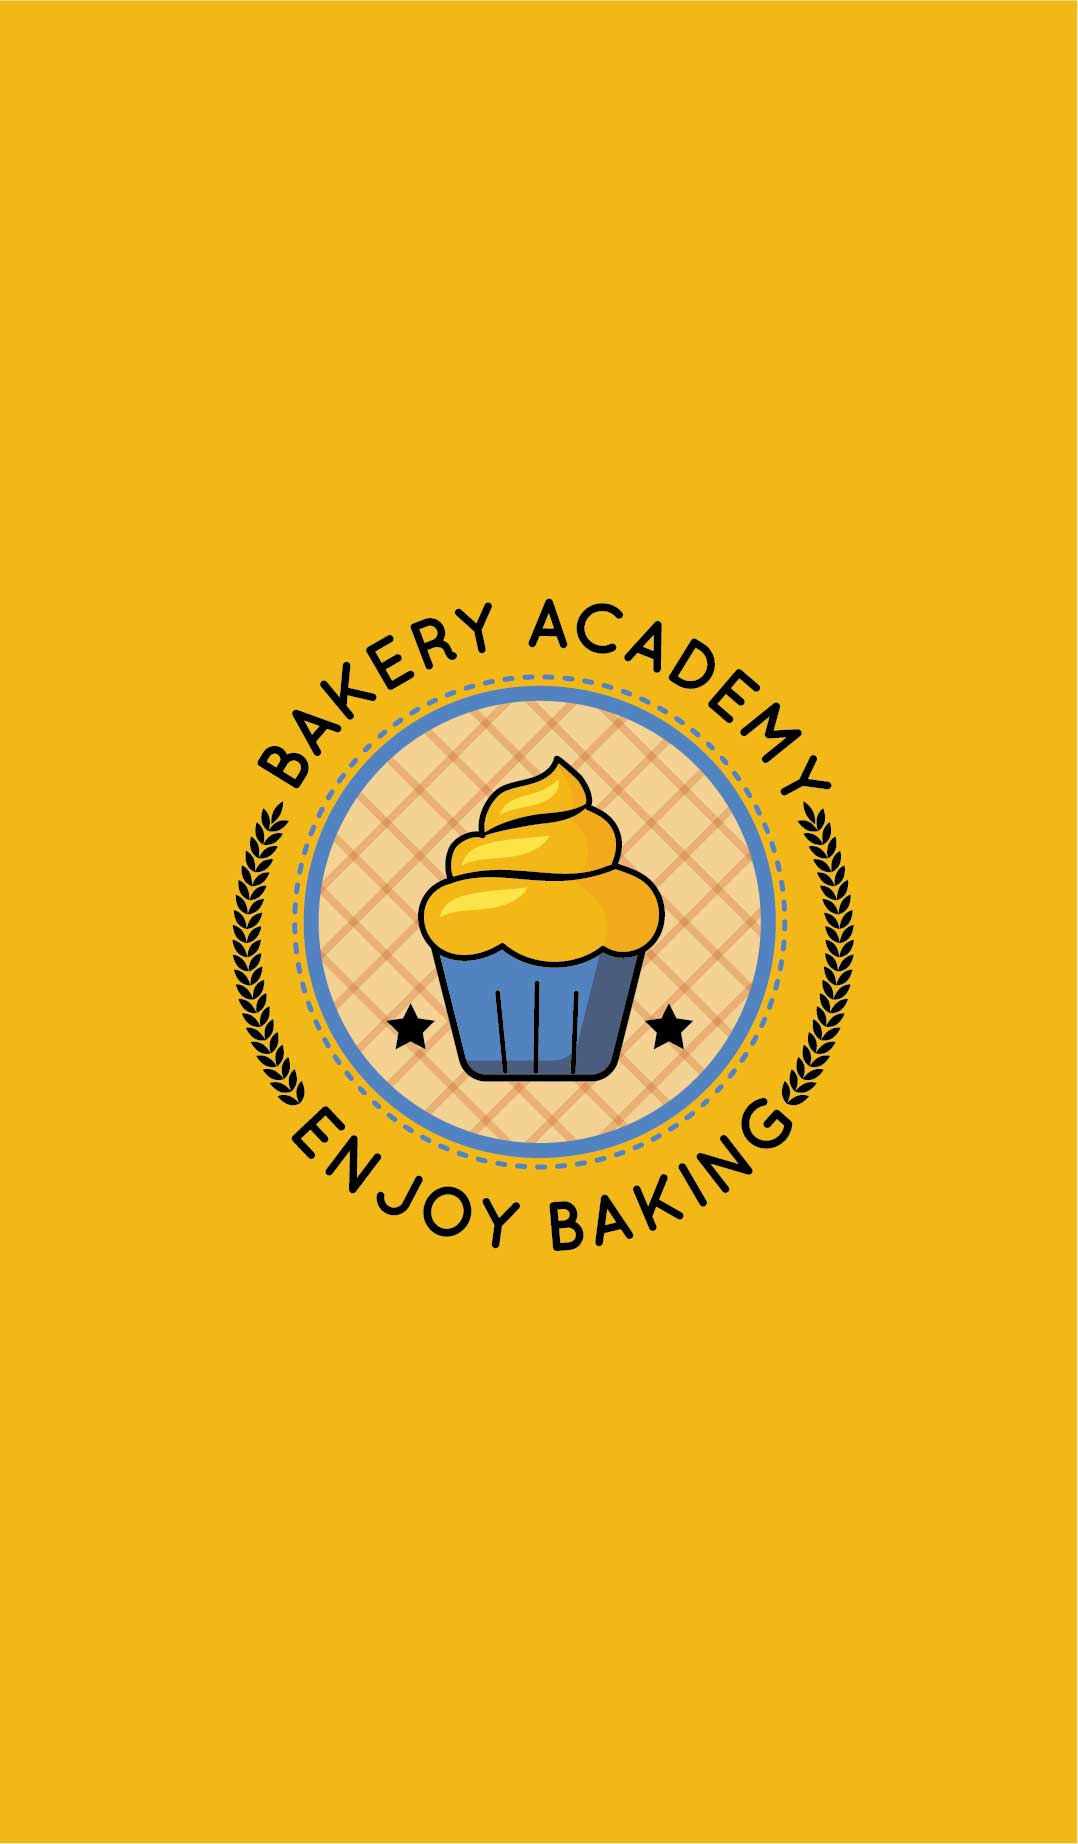 logo design service for Bakery Academy